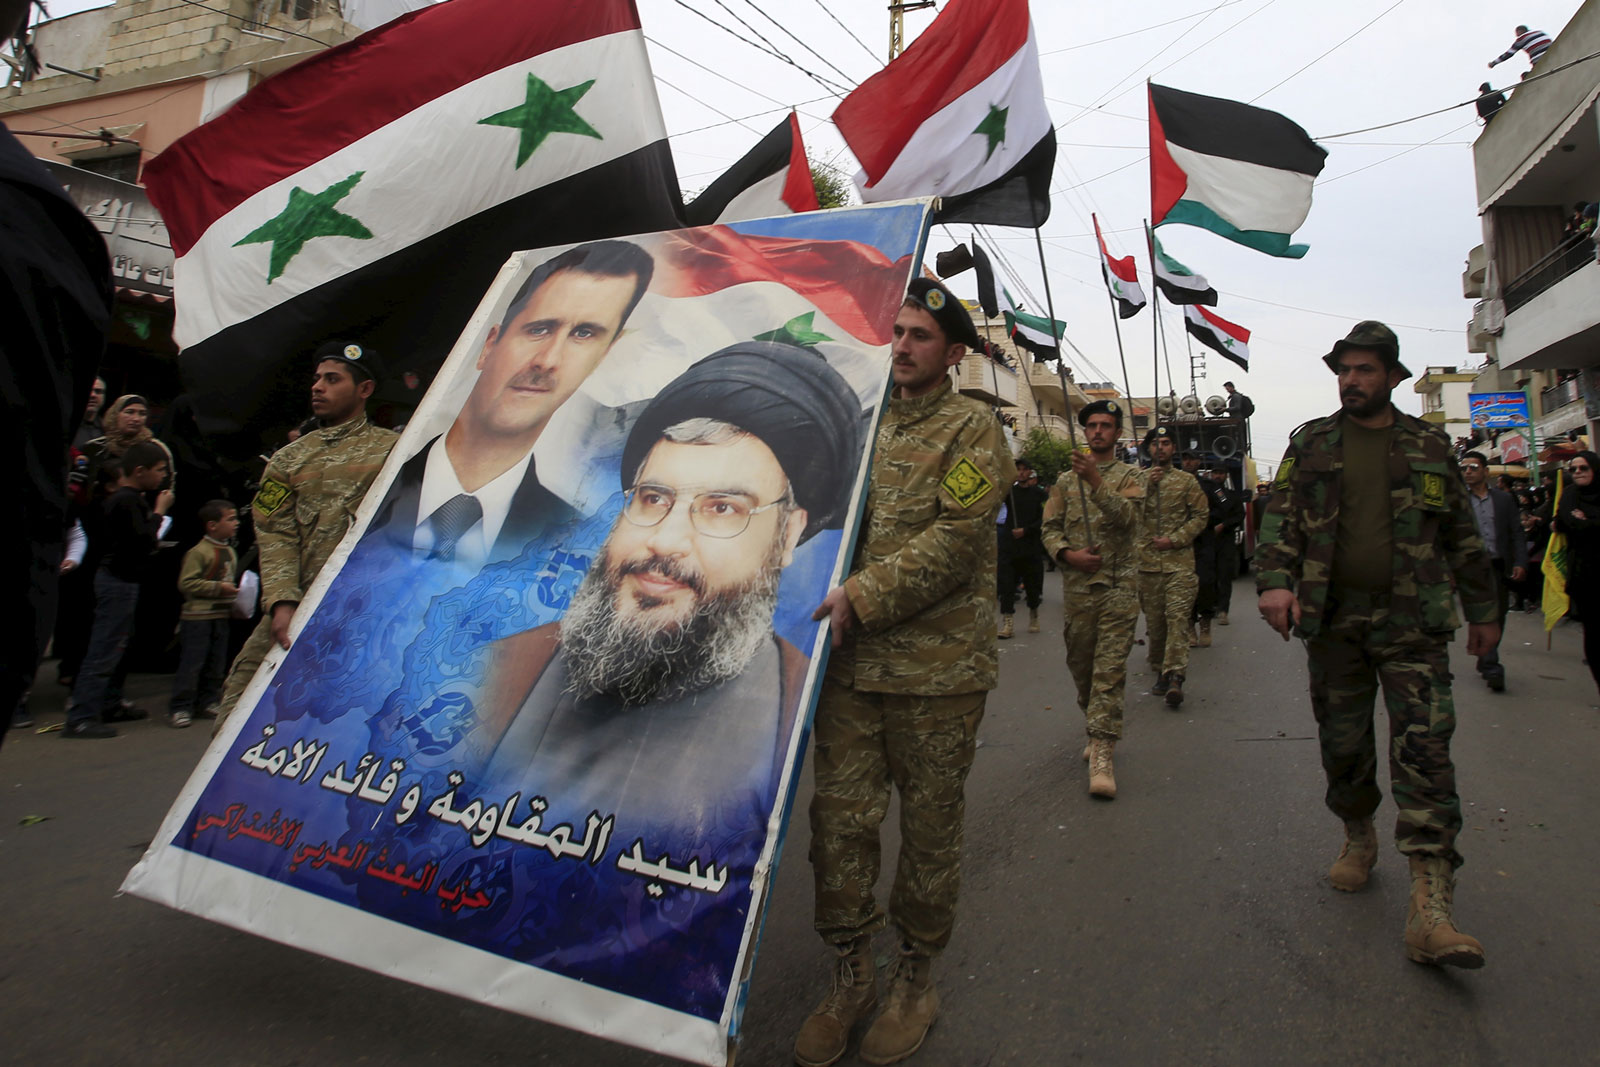 Supporters of the Syrian regime carrying a poster of Bashar al-Assad and Sayyed Hassan Nasrallah, the leader of Iran-backed Hezbollah, Ansar village, Lebanon, March 2, 2016